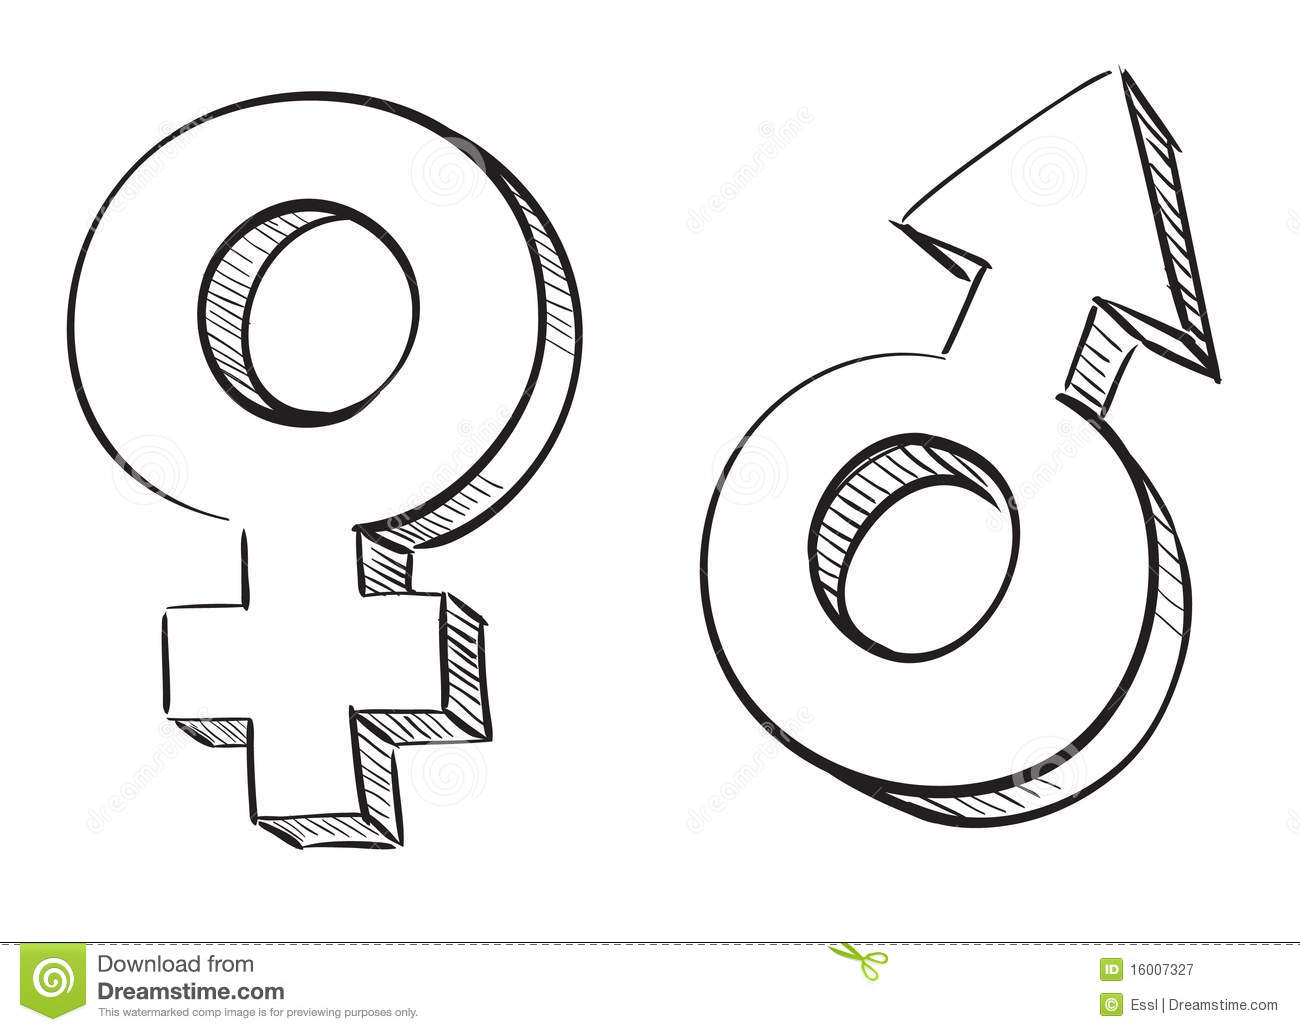 Male and female symbols stock vector. Image of human